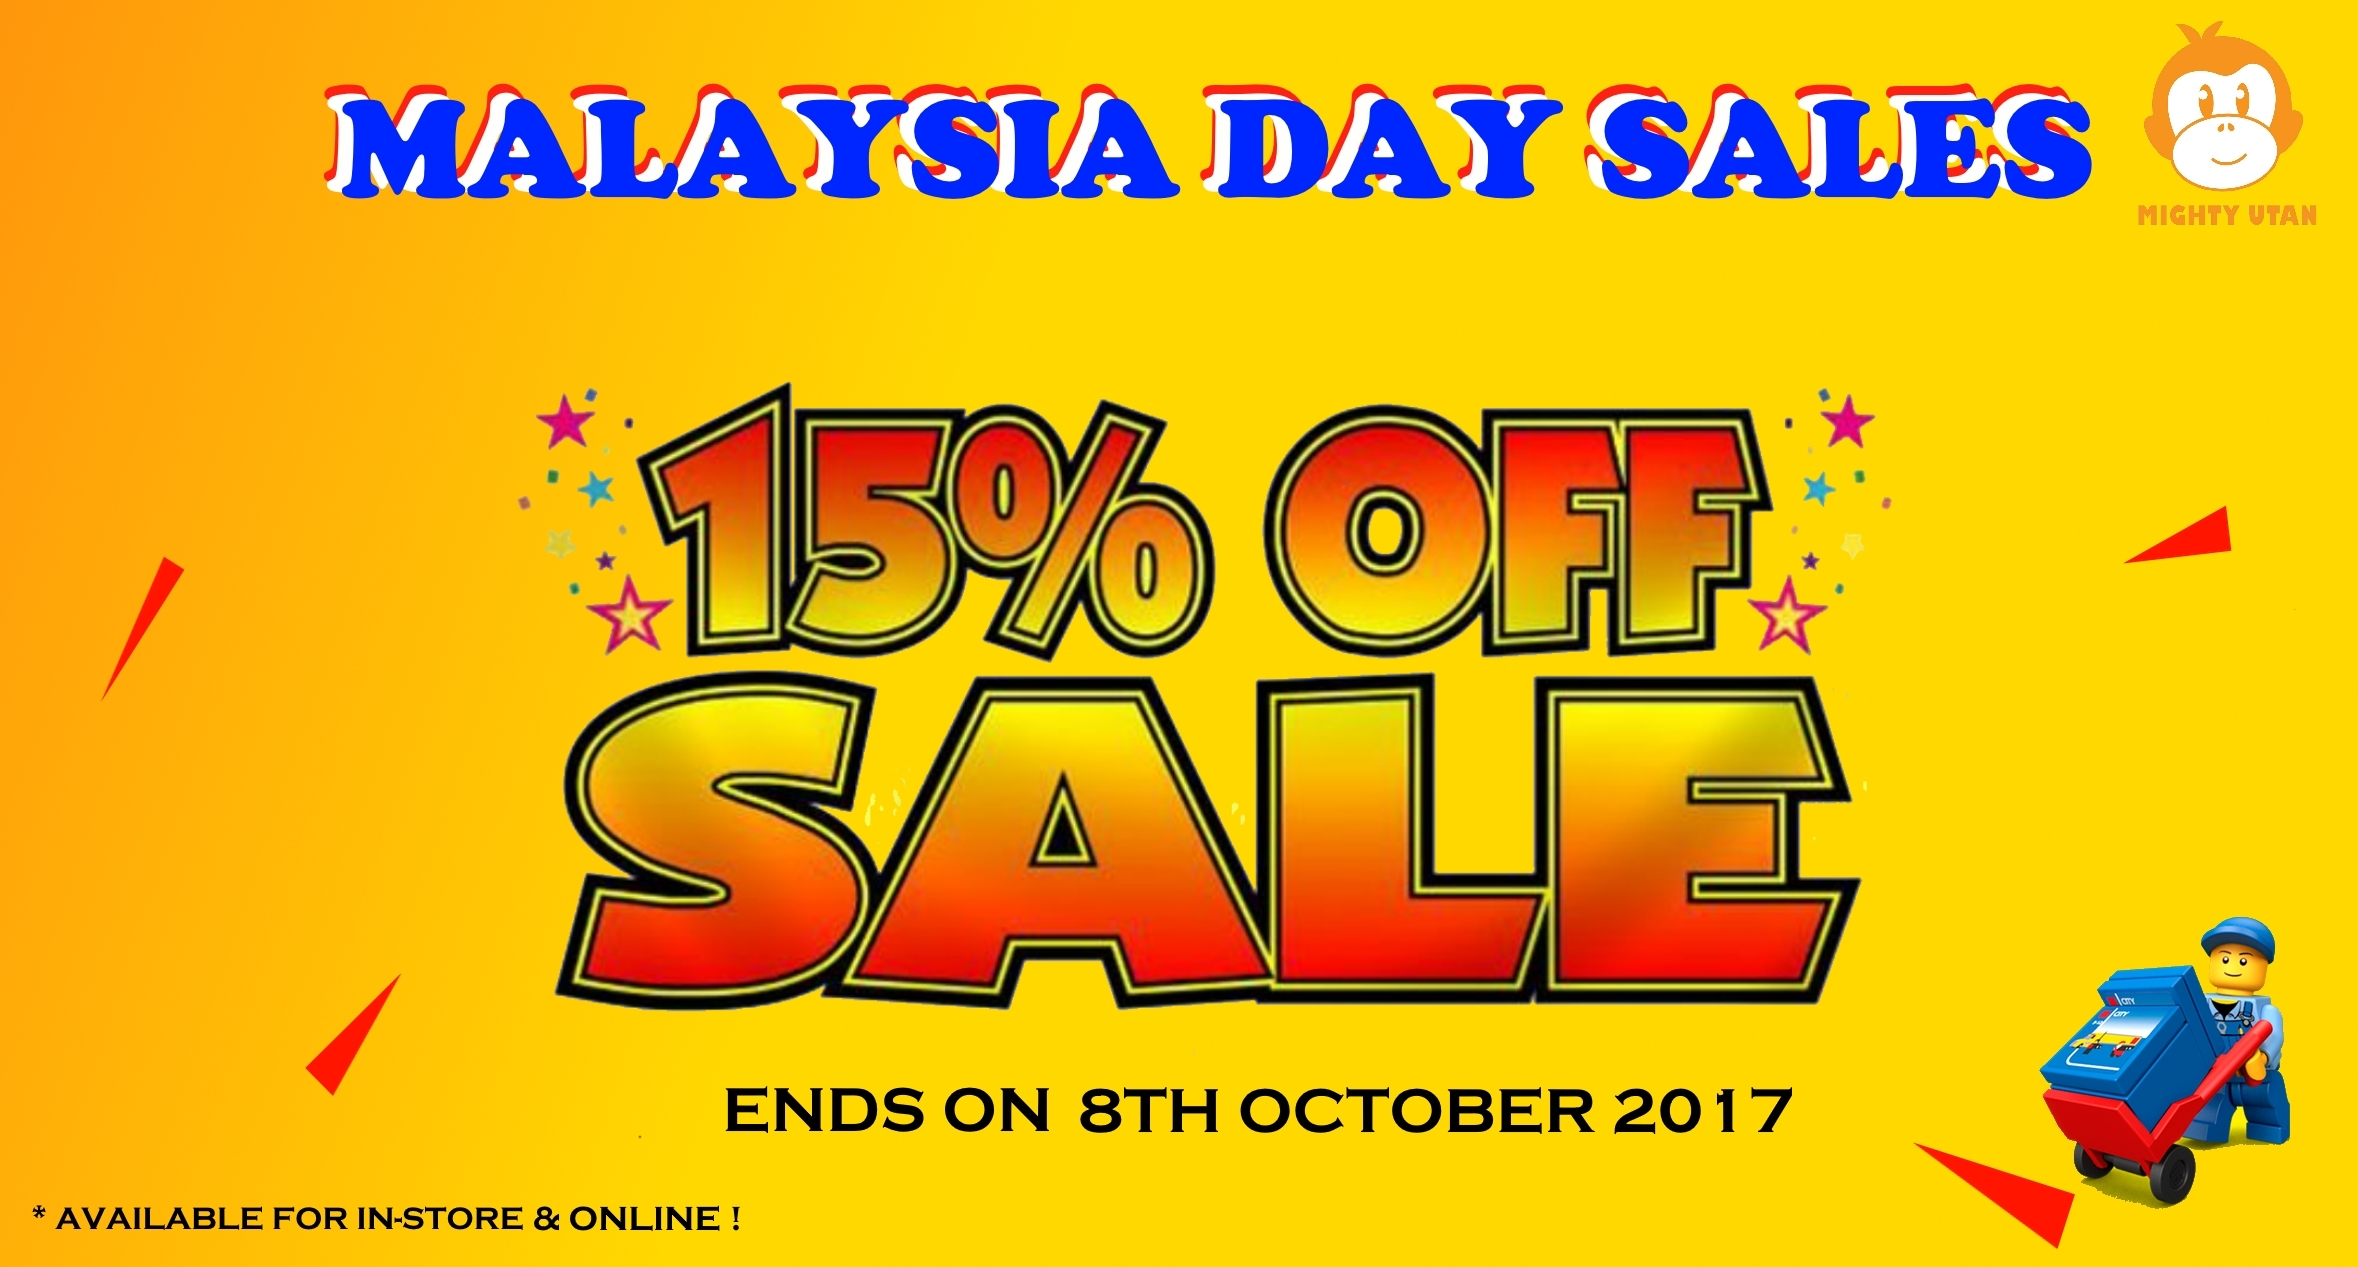 MALAYSIA NATIONAL DAY SALES 15% OFF